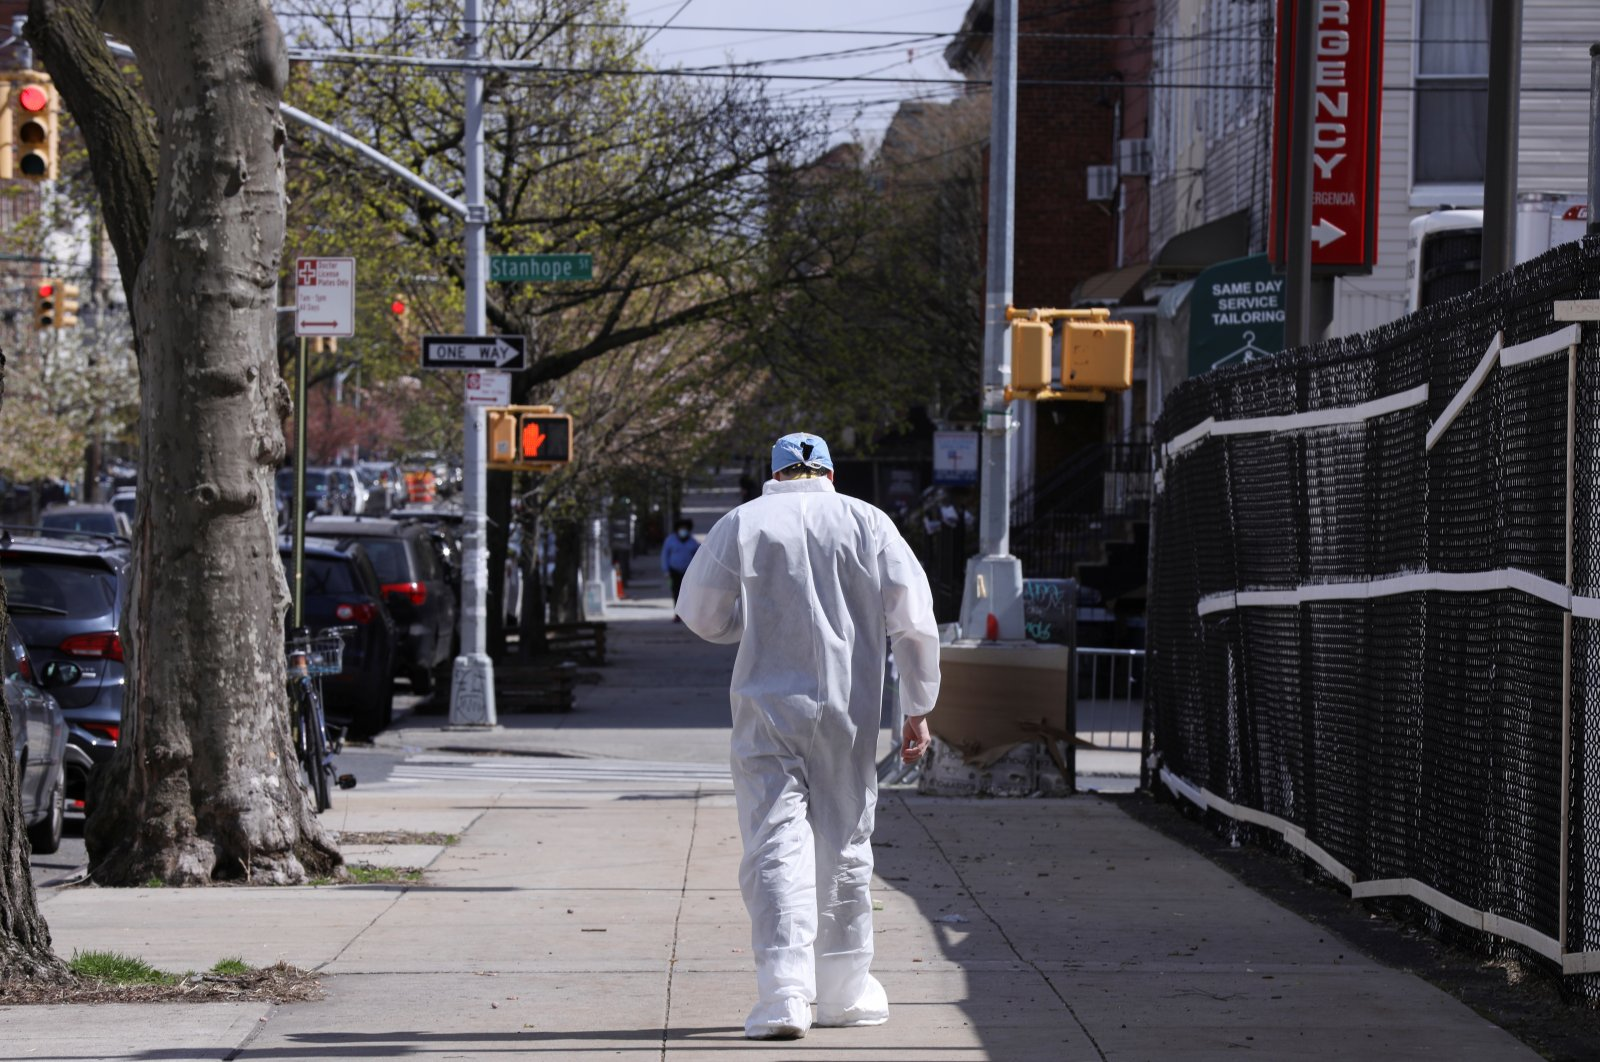 A doctor walks outside the Wyckoff Heights Medical Center in the Brooklyn borough of New York City, New York, U.S., Friday, April 10, 2020. (Reuters Photo)